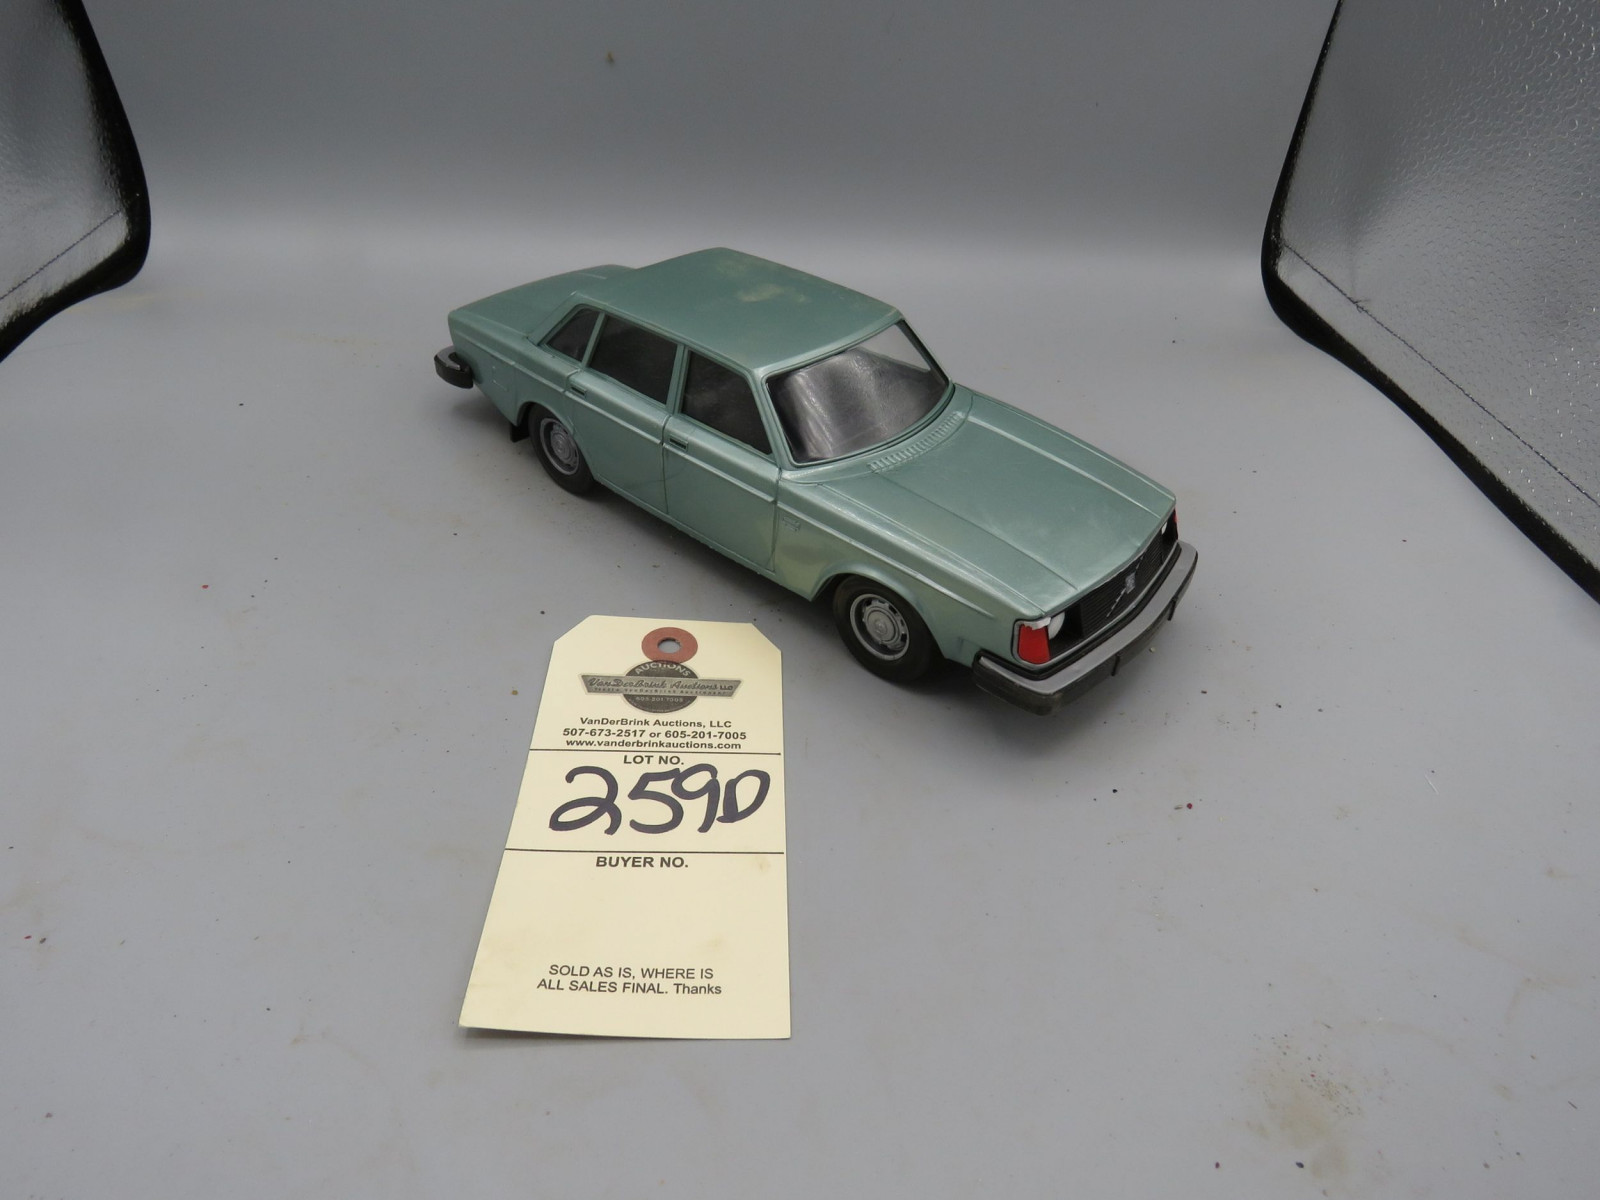 Volvo 244DL Promotional Model NIB Plastic - Image 1